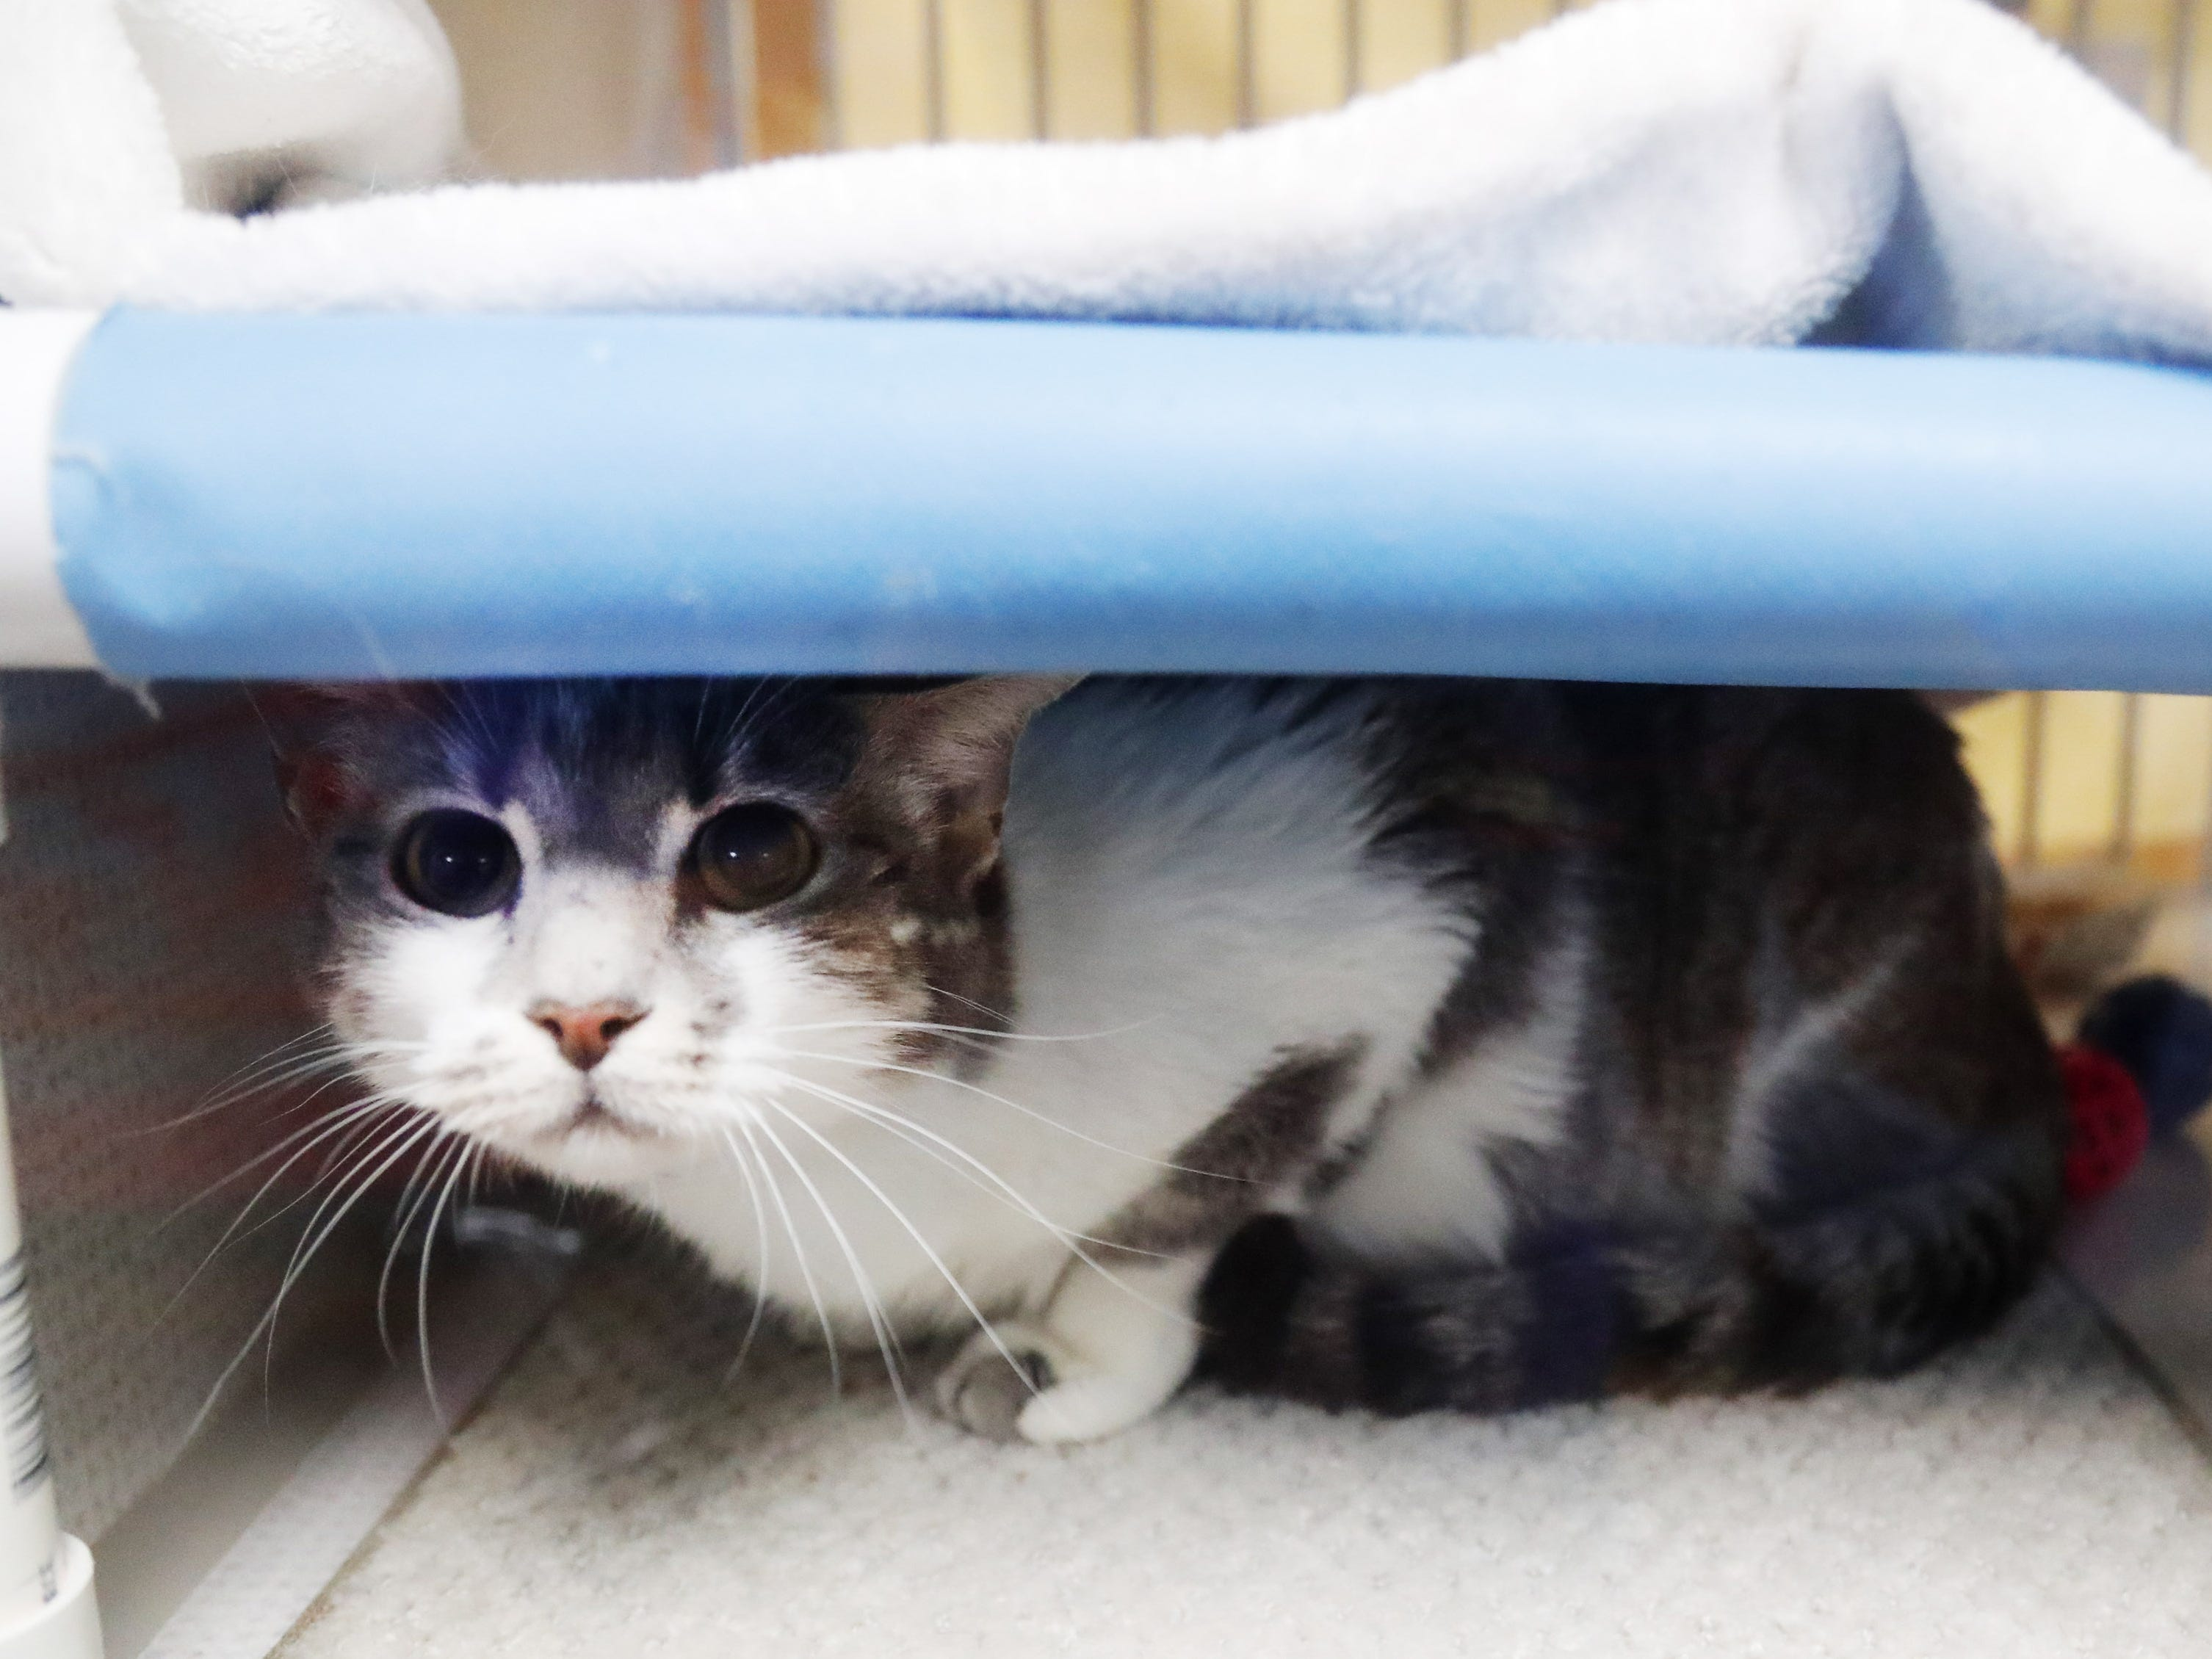 Layla, a domestic shorthair, waits to be adopted at the Arizona Humane Society in Phoenix on April 1, 2019. More than 8,000 dogs and cats have been surrendered in Maricopa County since the start of the year.